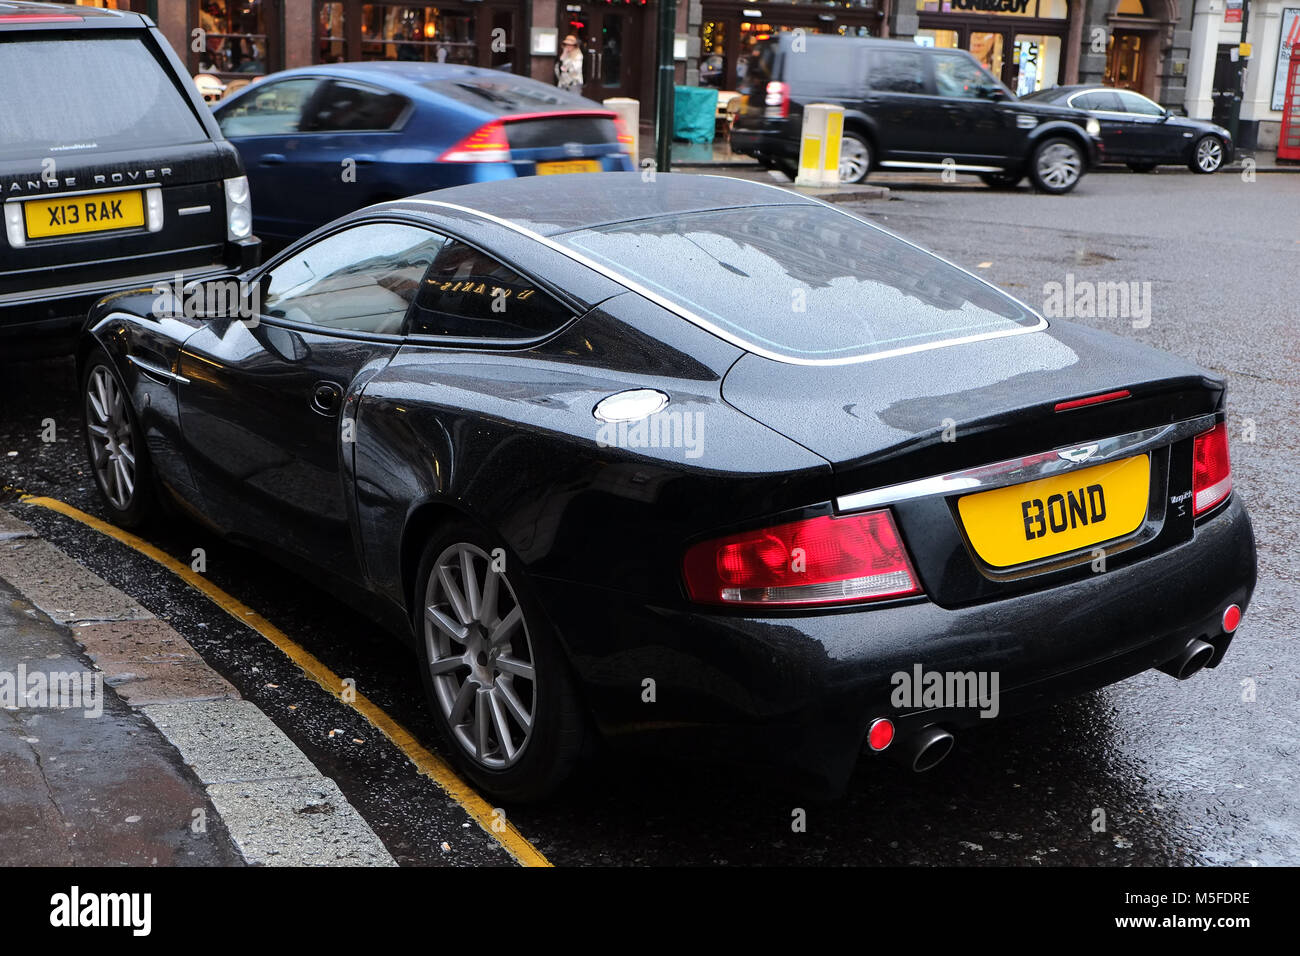 Aston Martin Vanquish parked in Sloane Square London. The owner has modified his E3 ONB number plate to read BOND after the Aston Martin driving Briti & Aston Martin Vanquish parked in Sloane Square London. The owner has ...